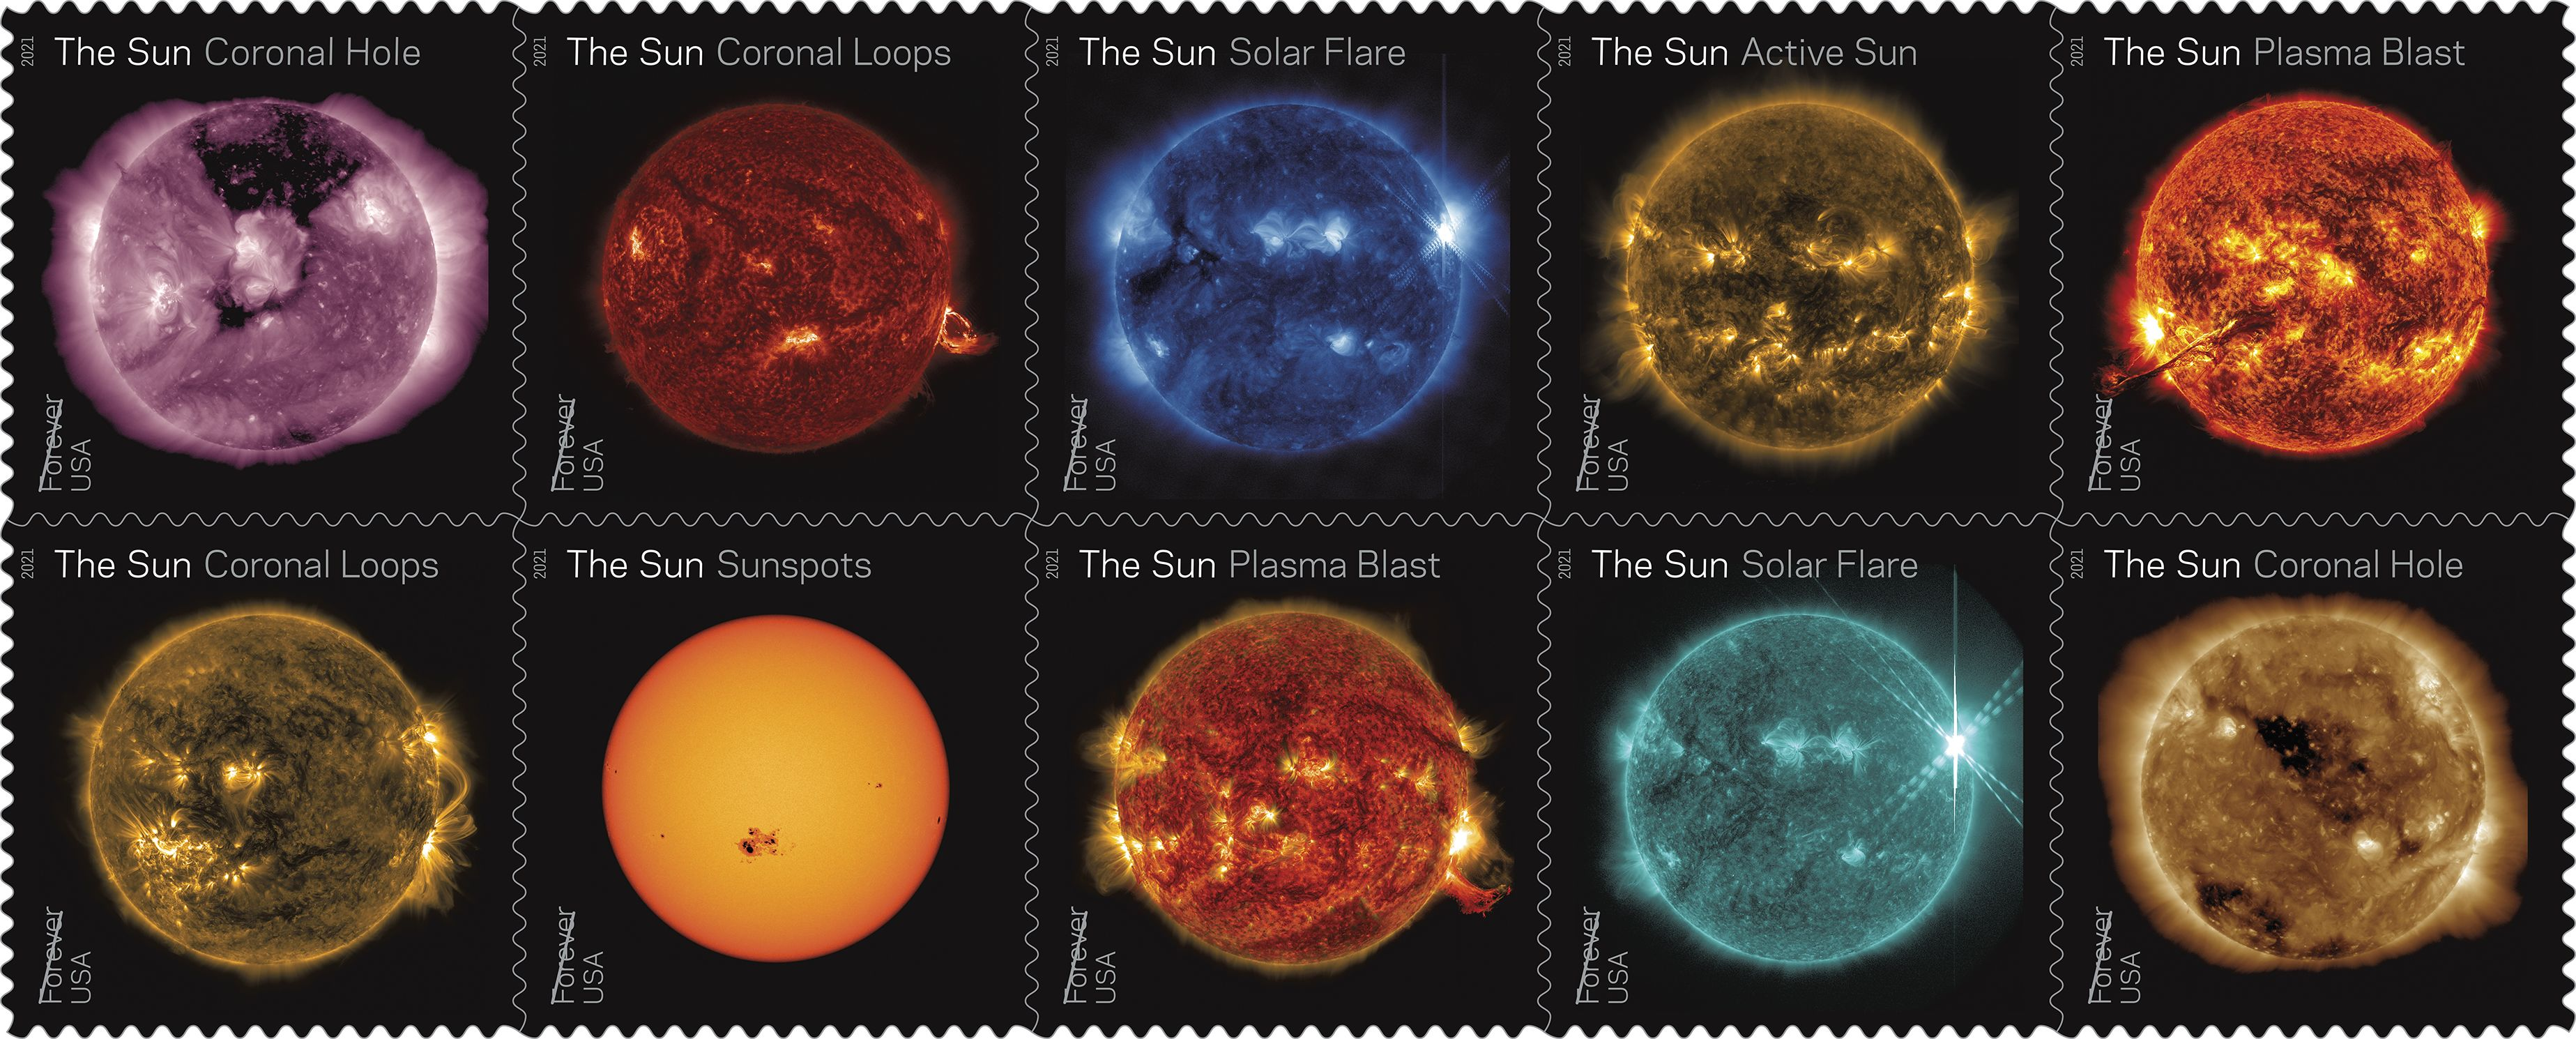 Sun Science Stamps Highlight a Decade of Sun-Watching from Space - NASA